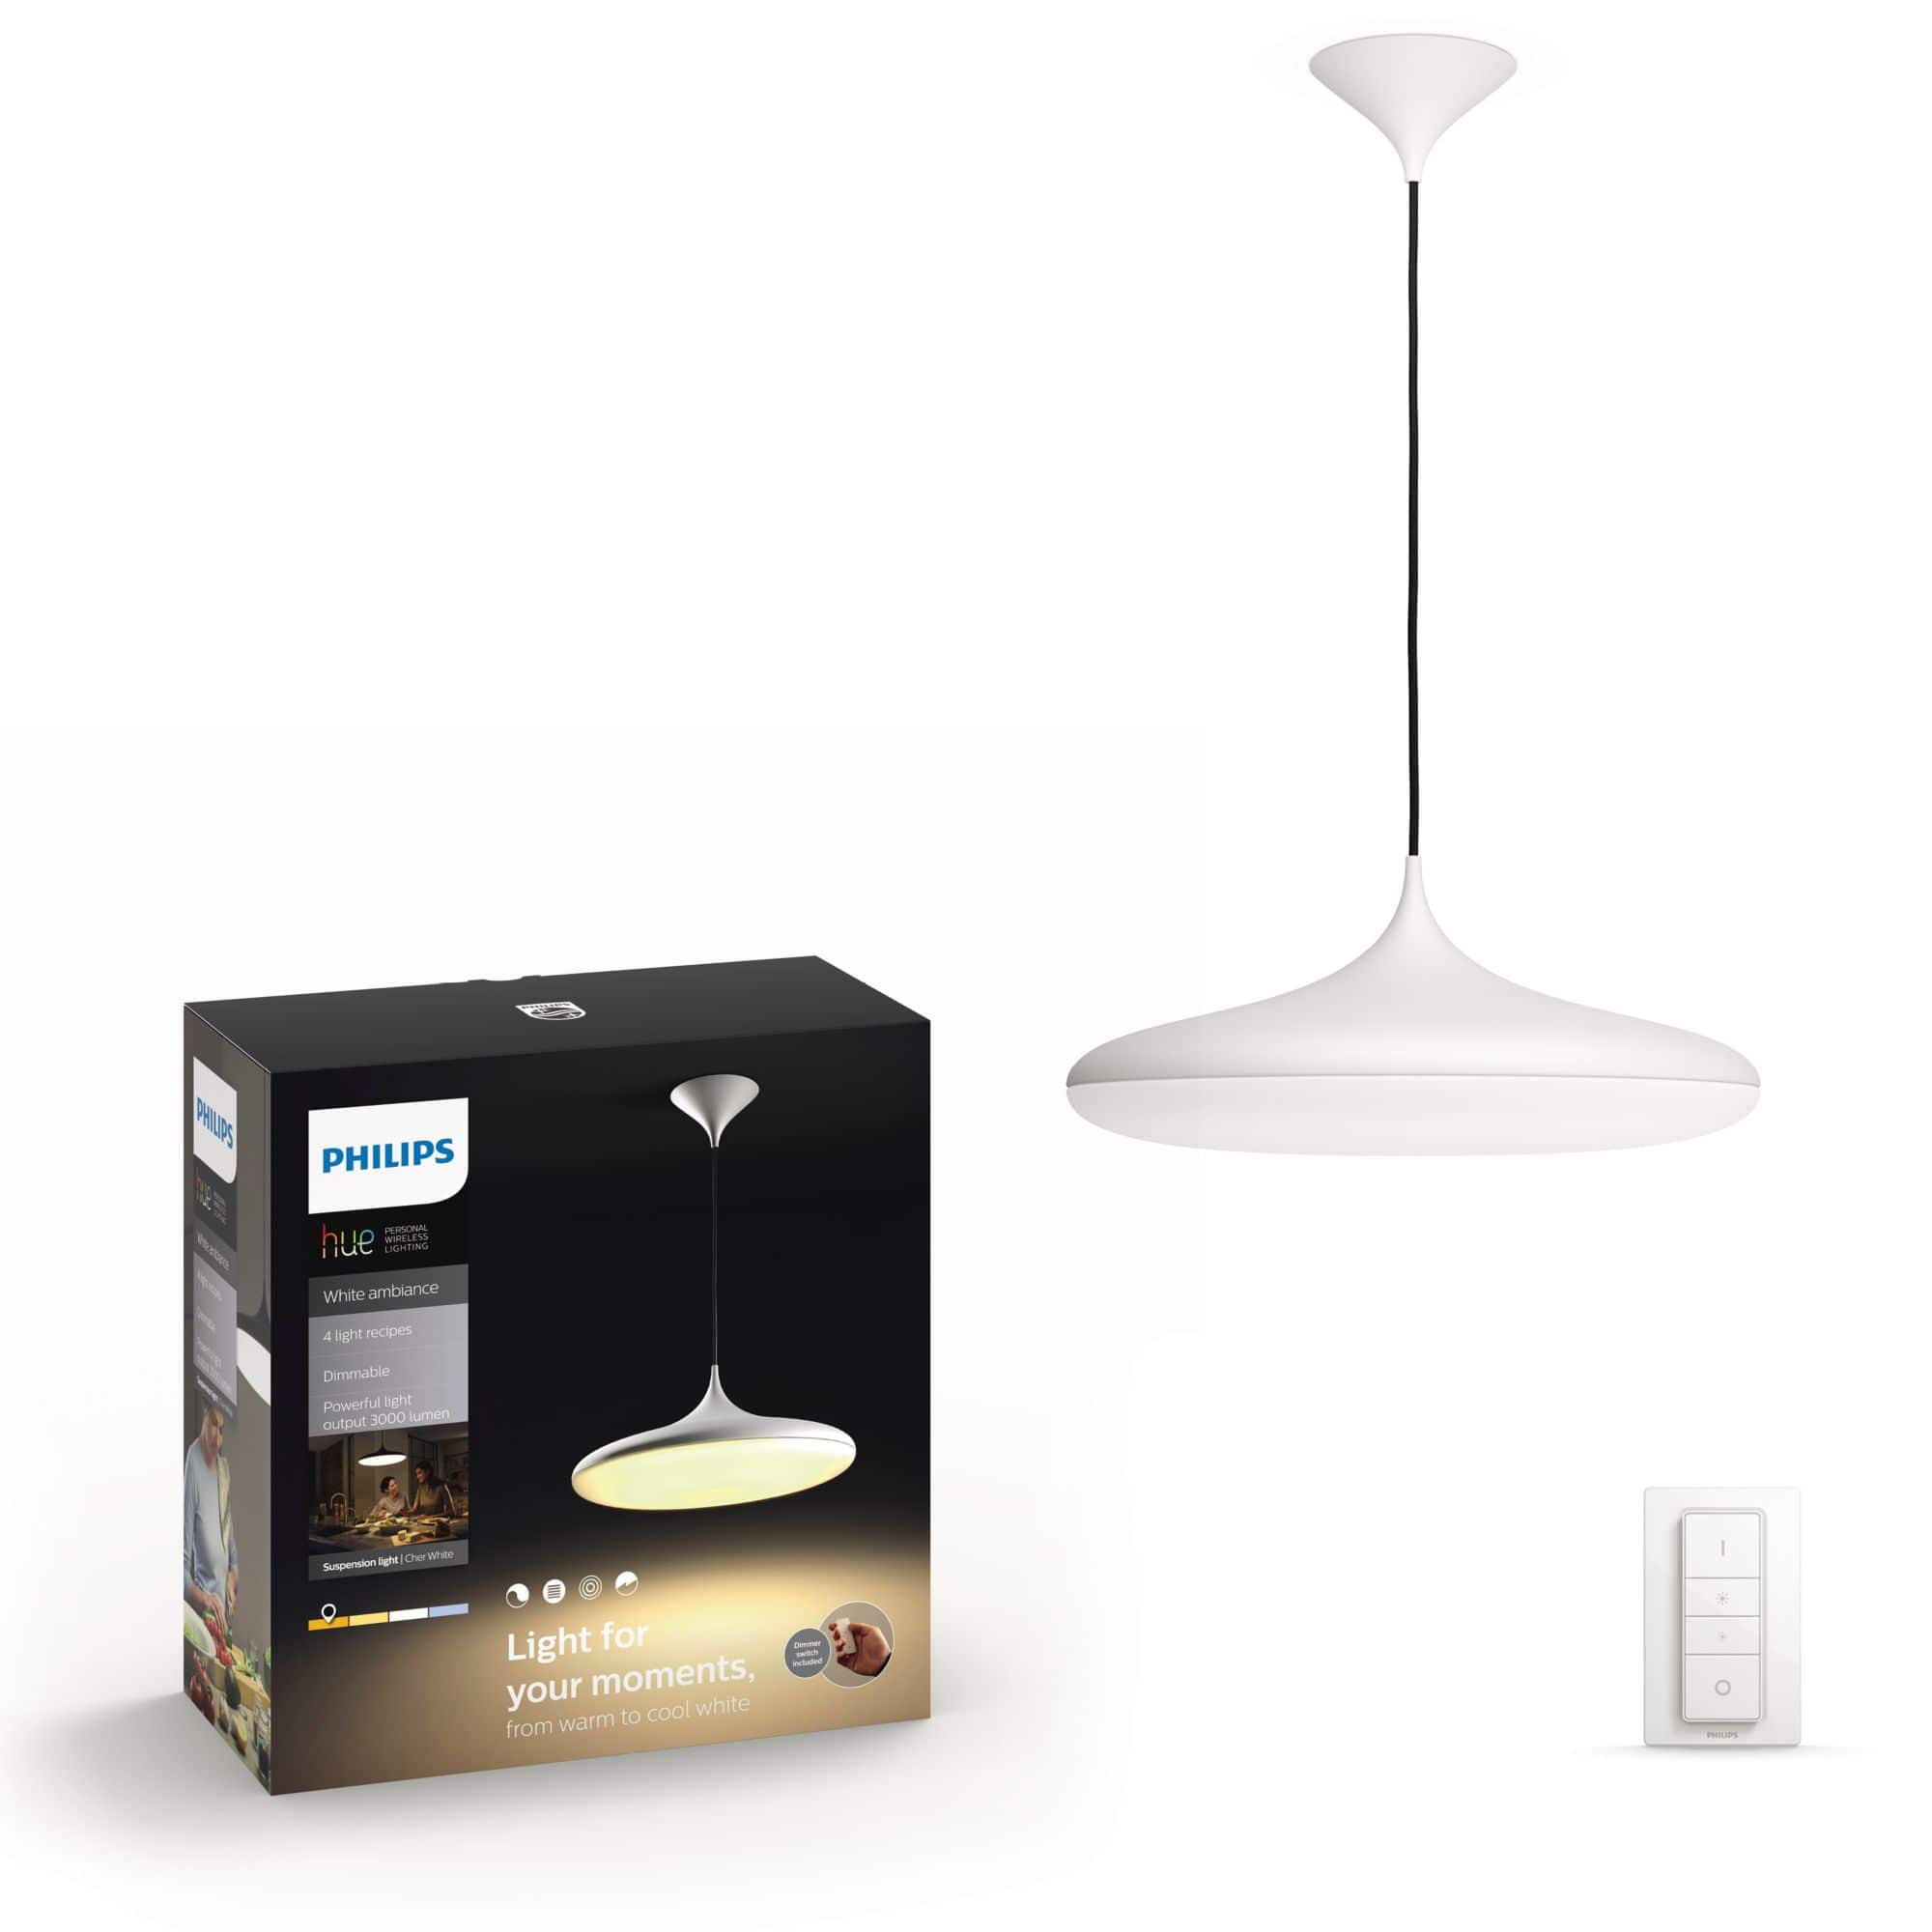 Philips by Signify 4076131P7 Cher Hue White Ambiance-Deckenleuchte LED 39W dimmbar für 199,99 Euro